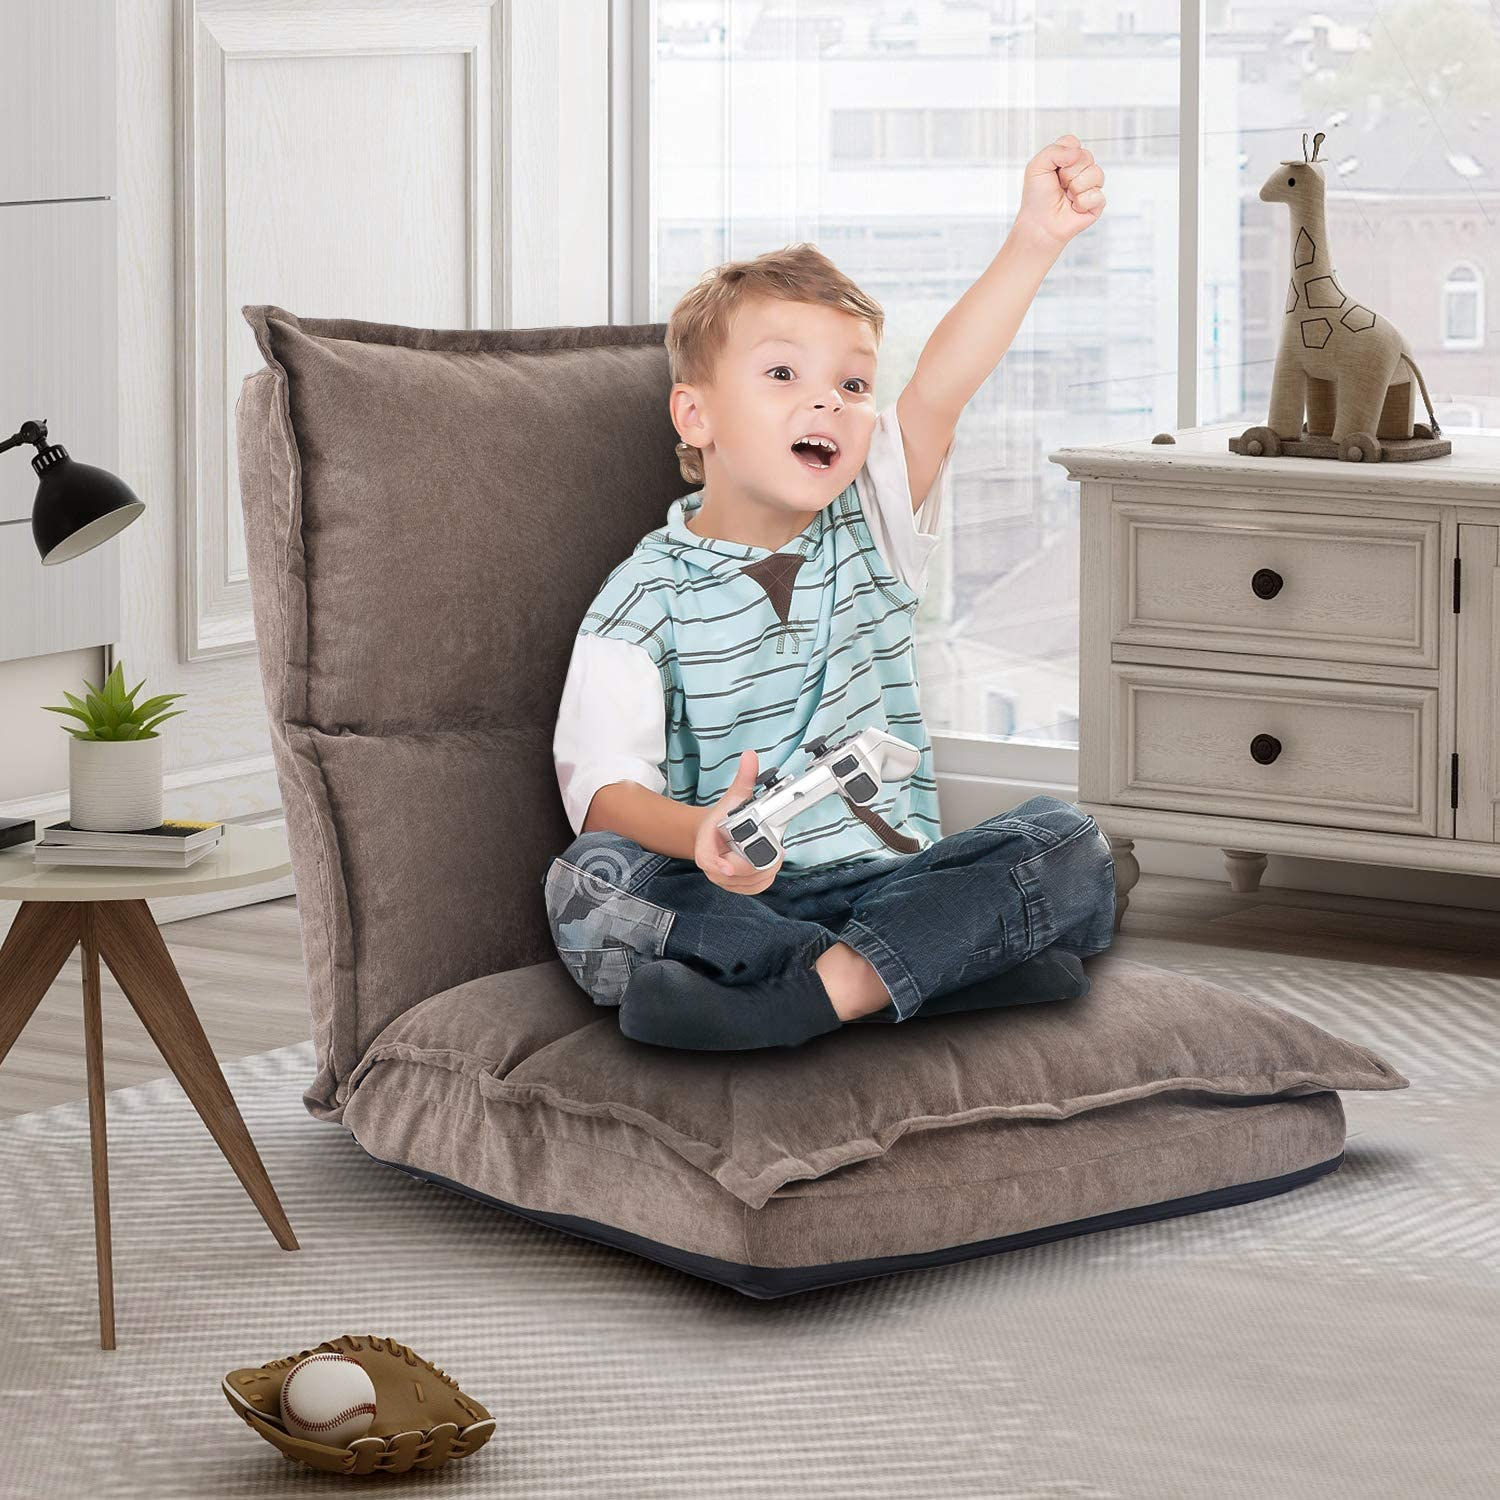 Floor Gaming Chair For Kids Fabric Upholstered Folding Chair Lazy Sofa Adjustable Floor Video Game Chair Light Brown Kitchen Dining